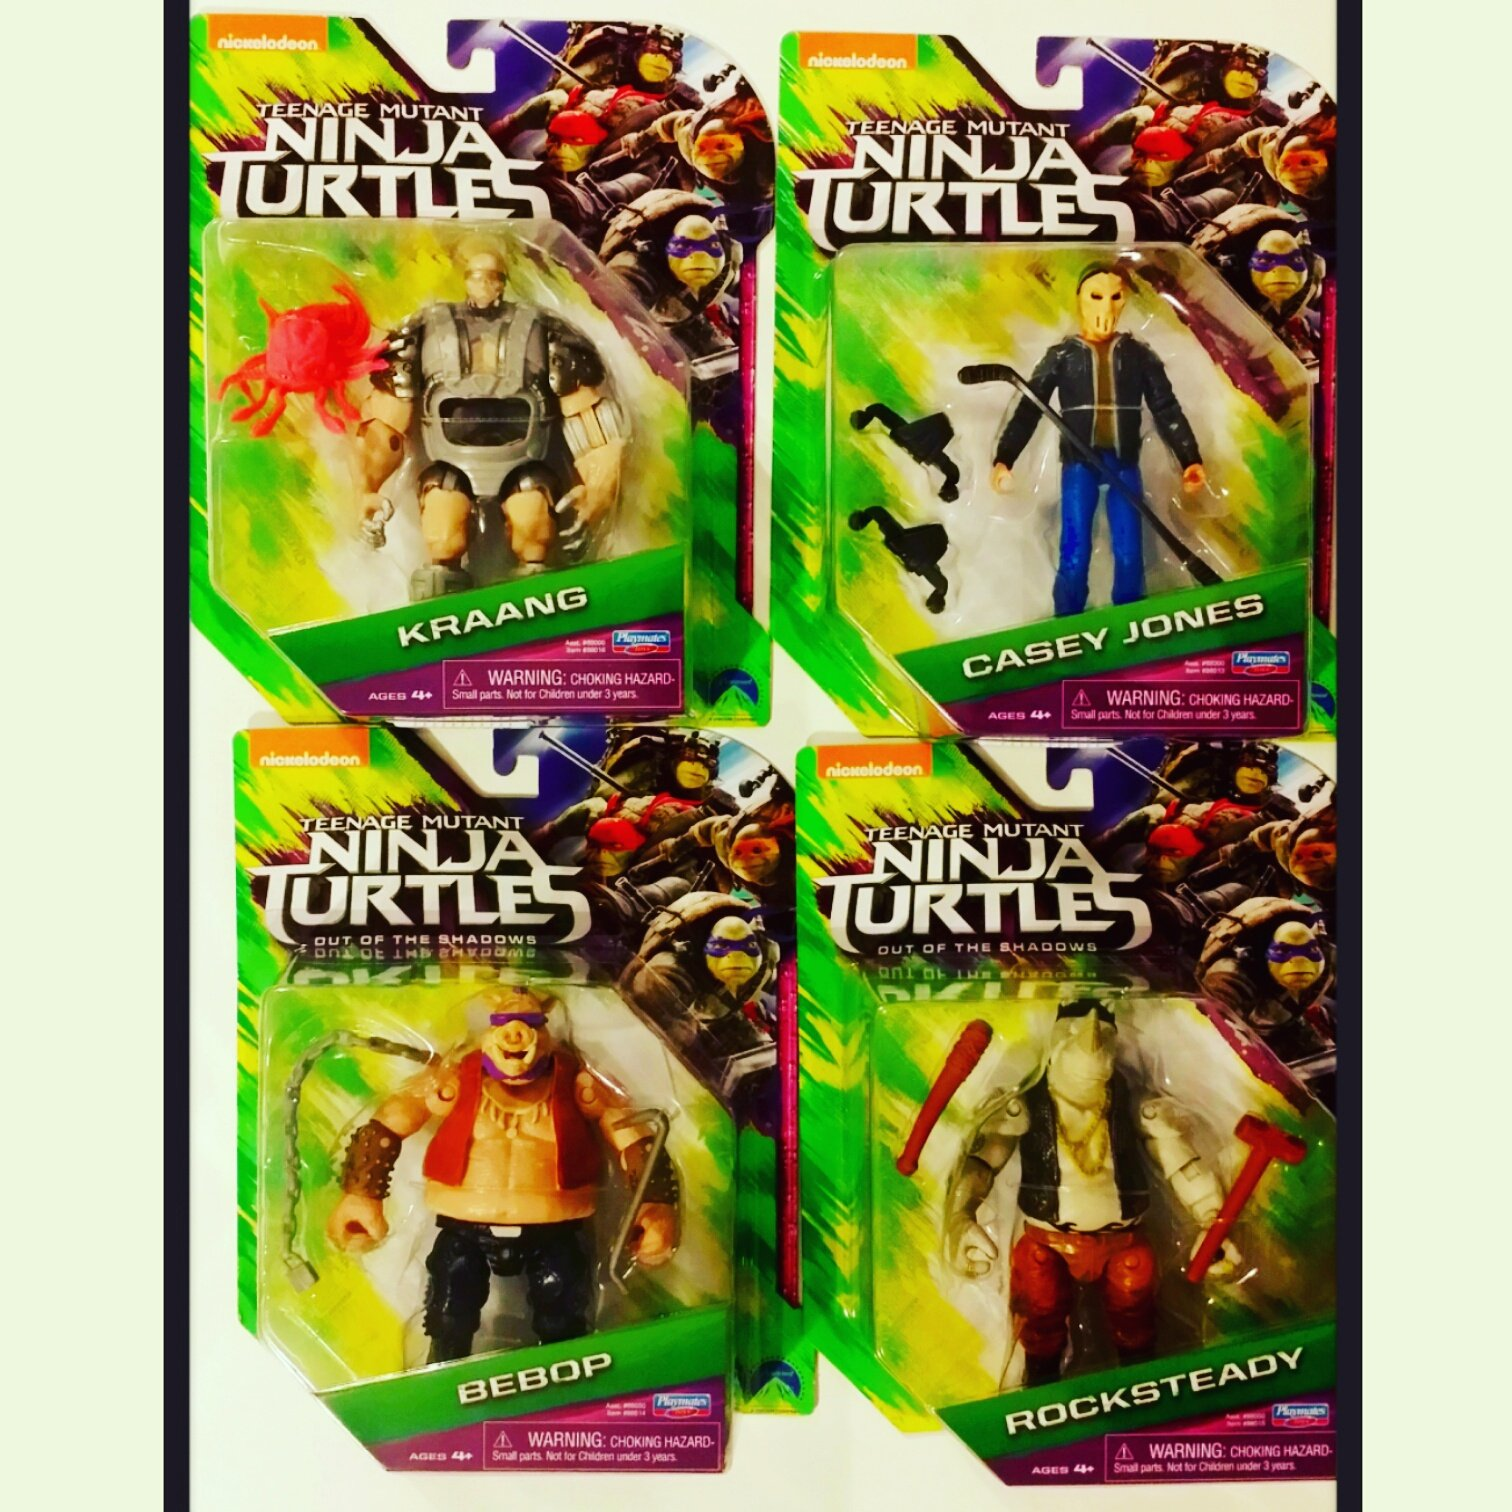 #tmnt #teenagemutantninjaturtles #outoftheshadows #actionfigures #bebop #rocksteady #caseyjones #kraang #playmatestoys #geekshavethemostfun